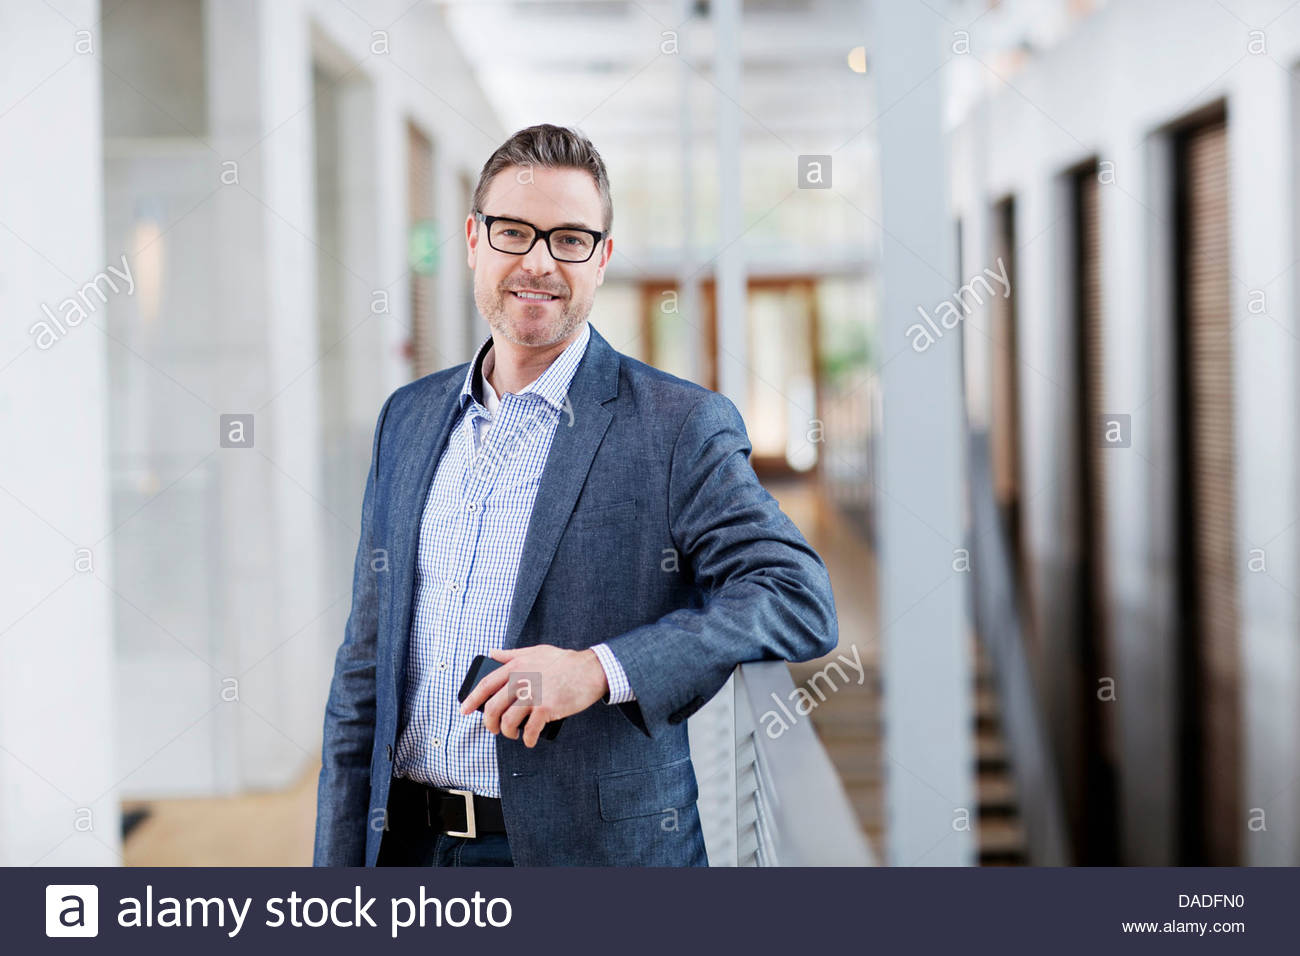 Man looking at camera Photo Stock